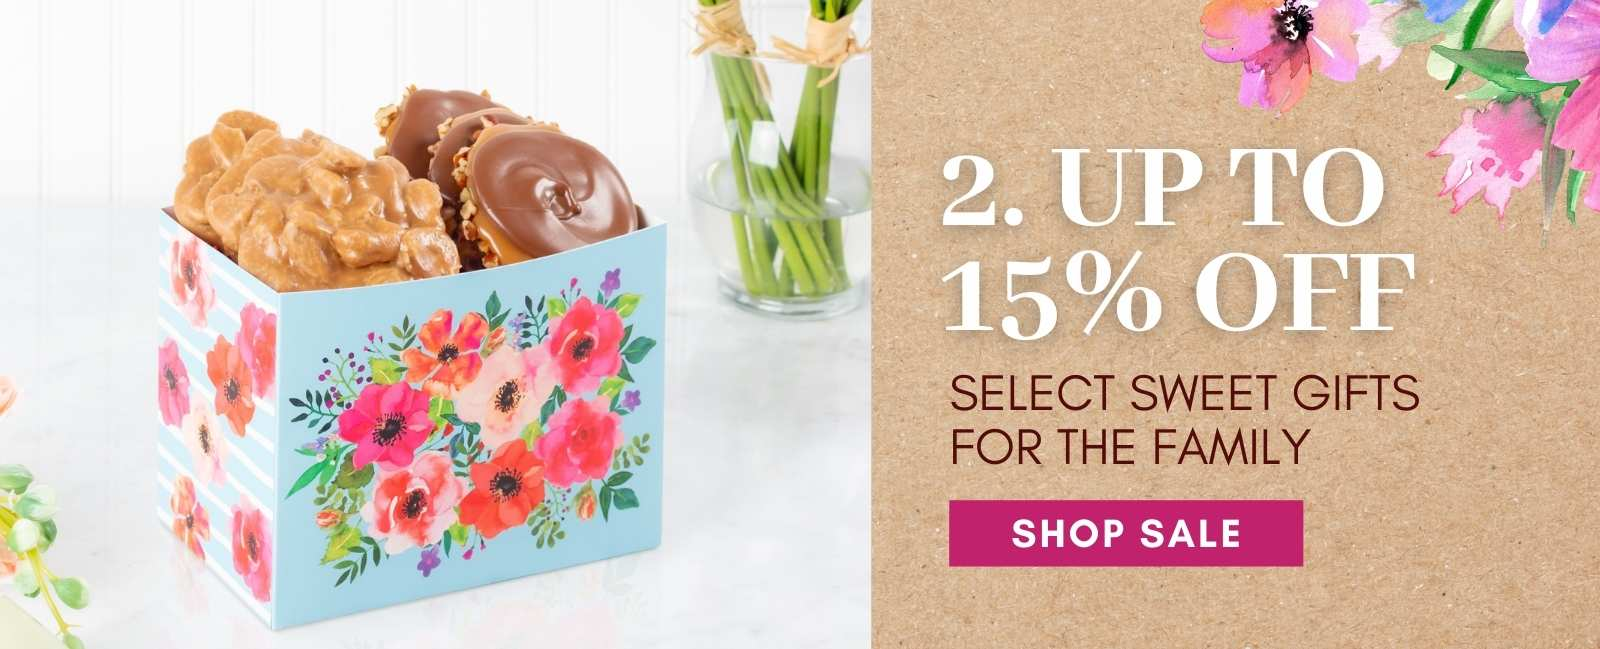 Up to 15% off select sweets